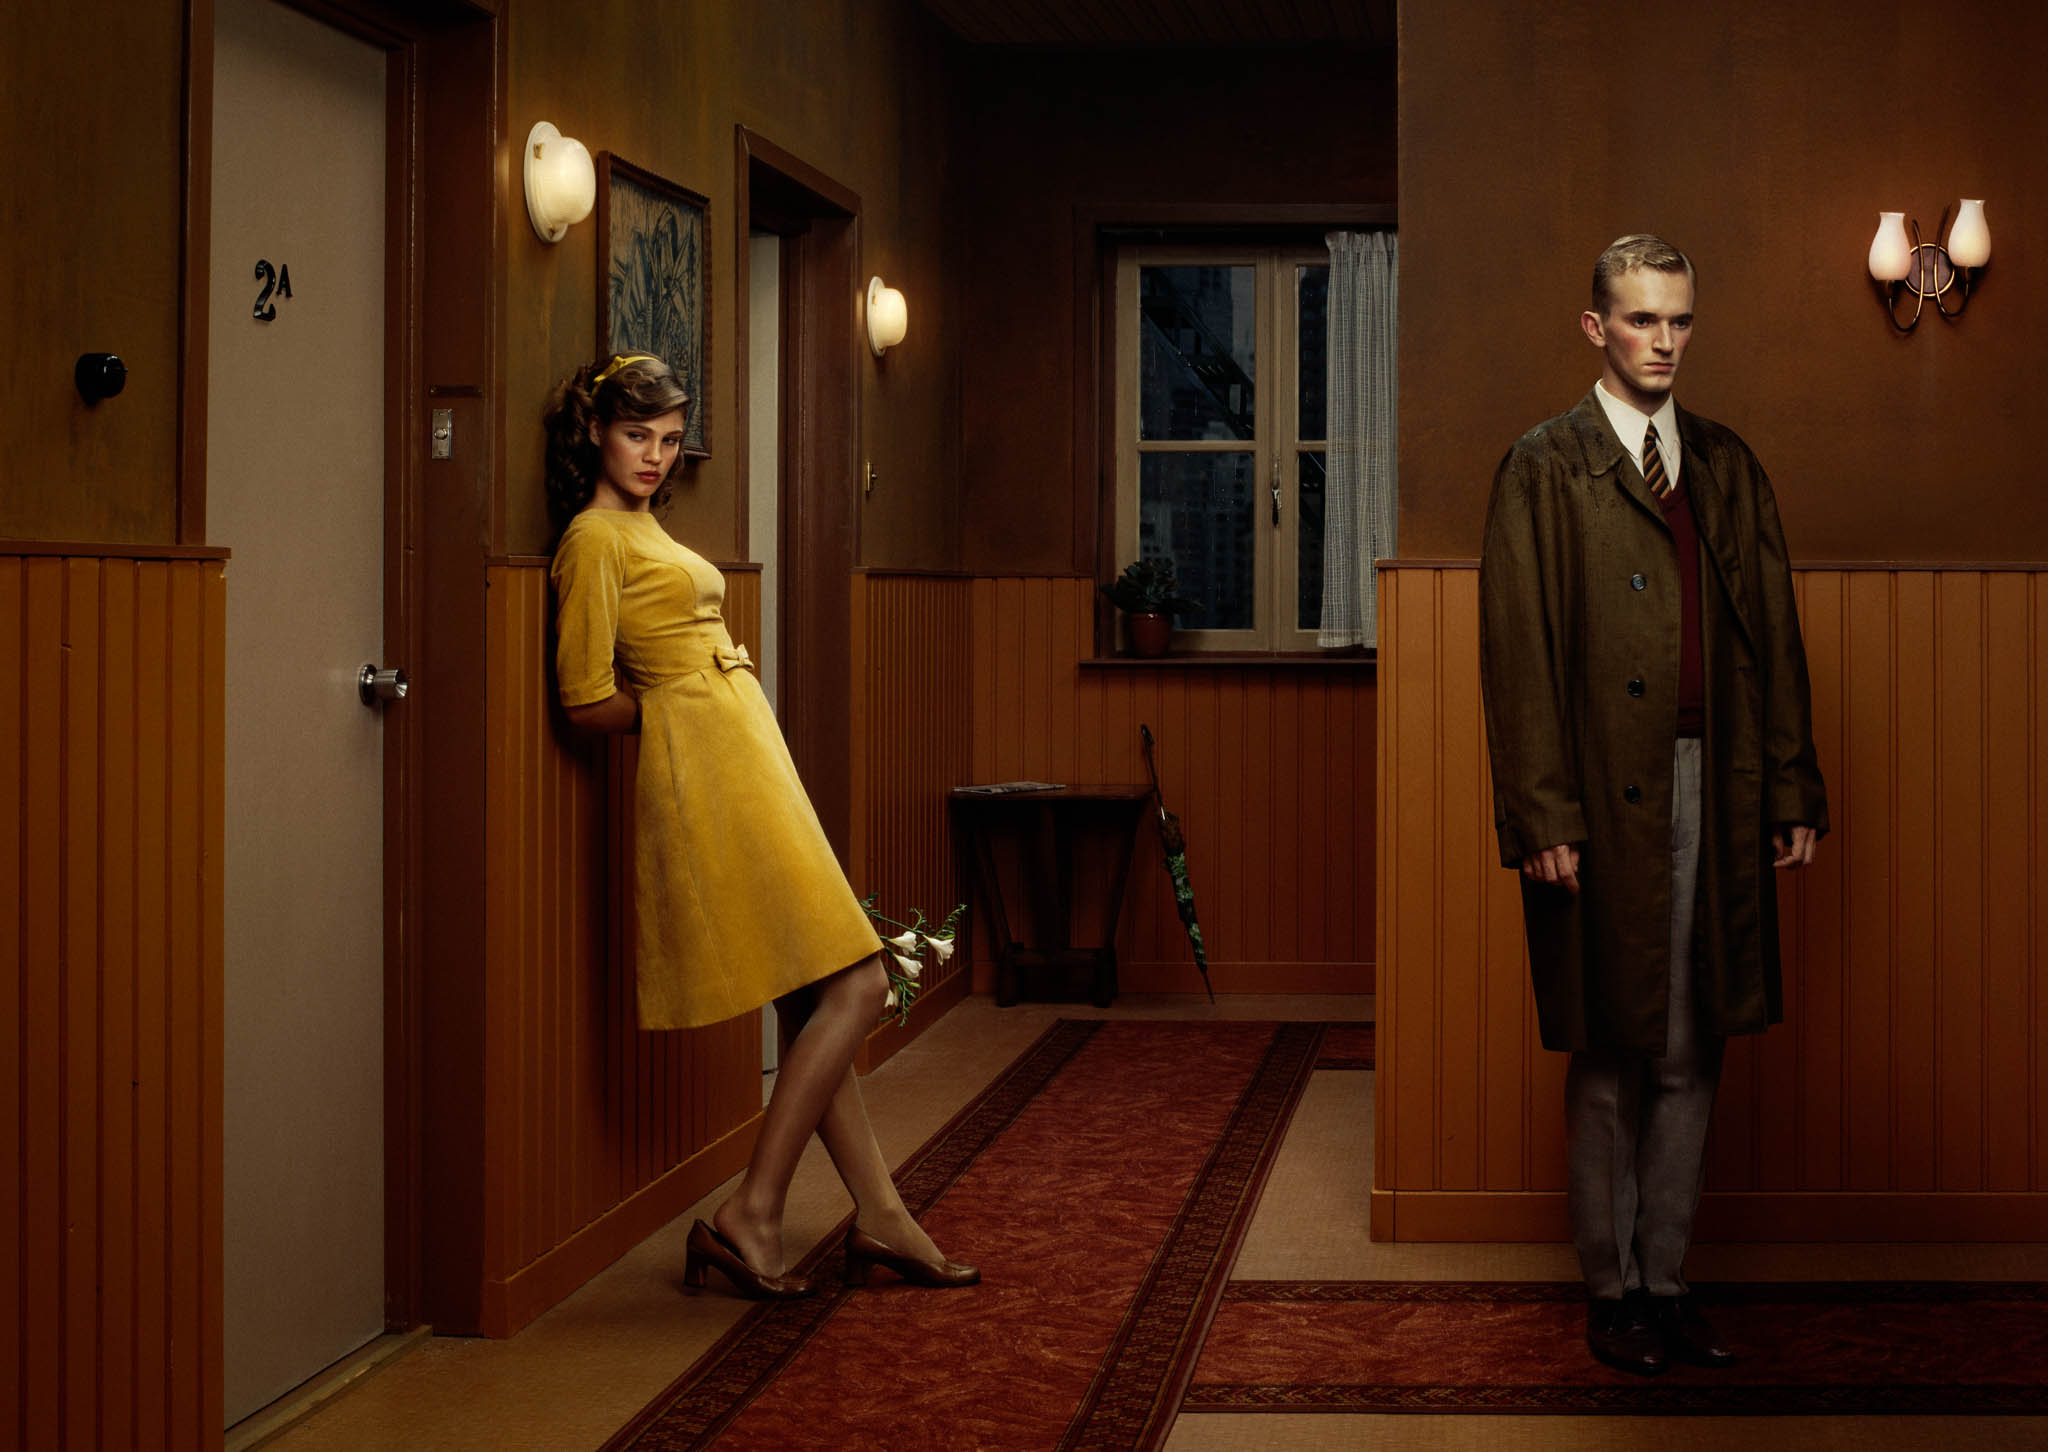 Erwin Olaf, Hope, The Hallway. 2005 © Erwin Olaf. Courtesy Flatland Gallery